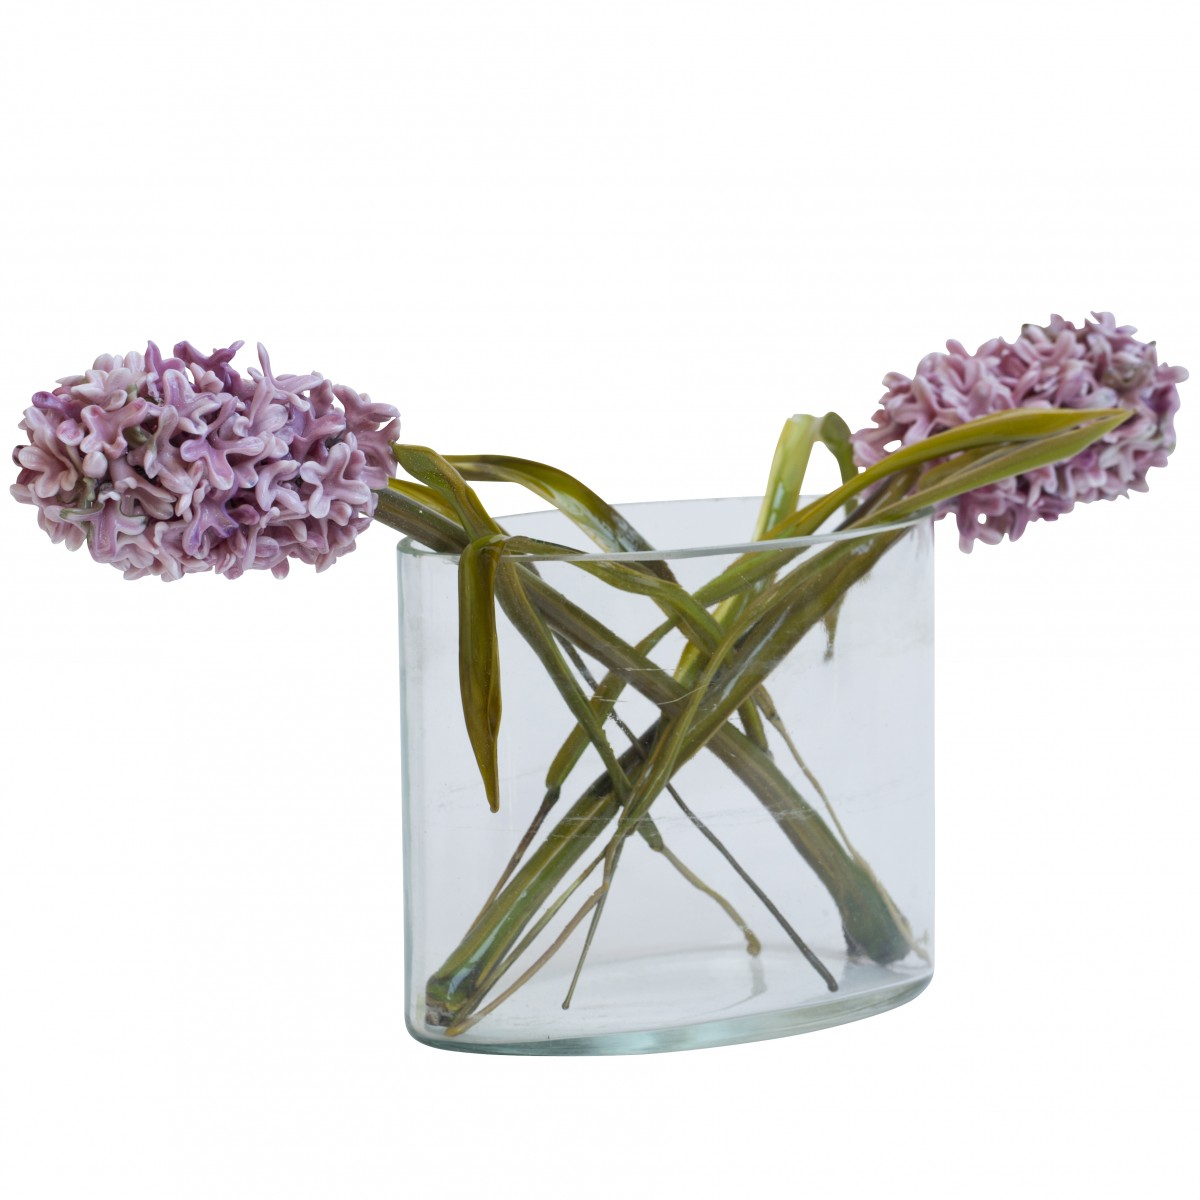 Lilla Tabasso – Bouquet of Hyacint Flowers – Available on www.artemest.com